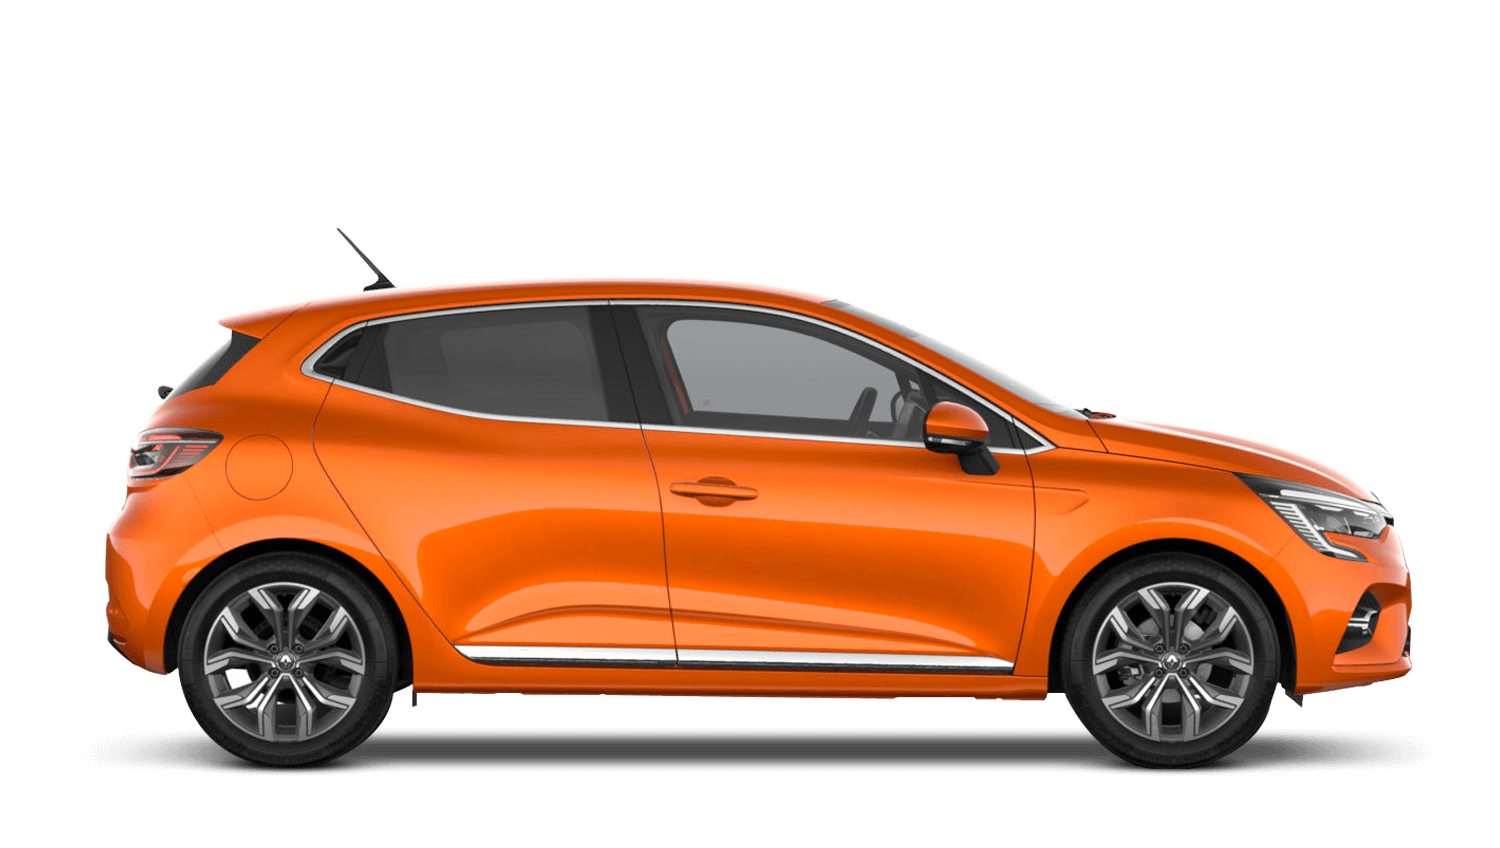 Valencia Orange All-New Renault CLIO